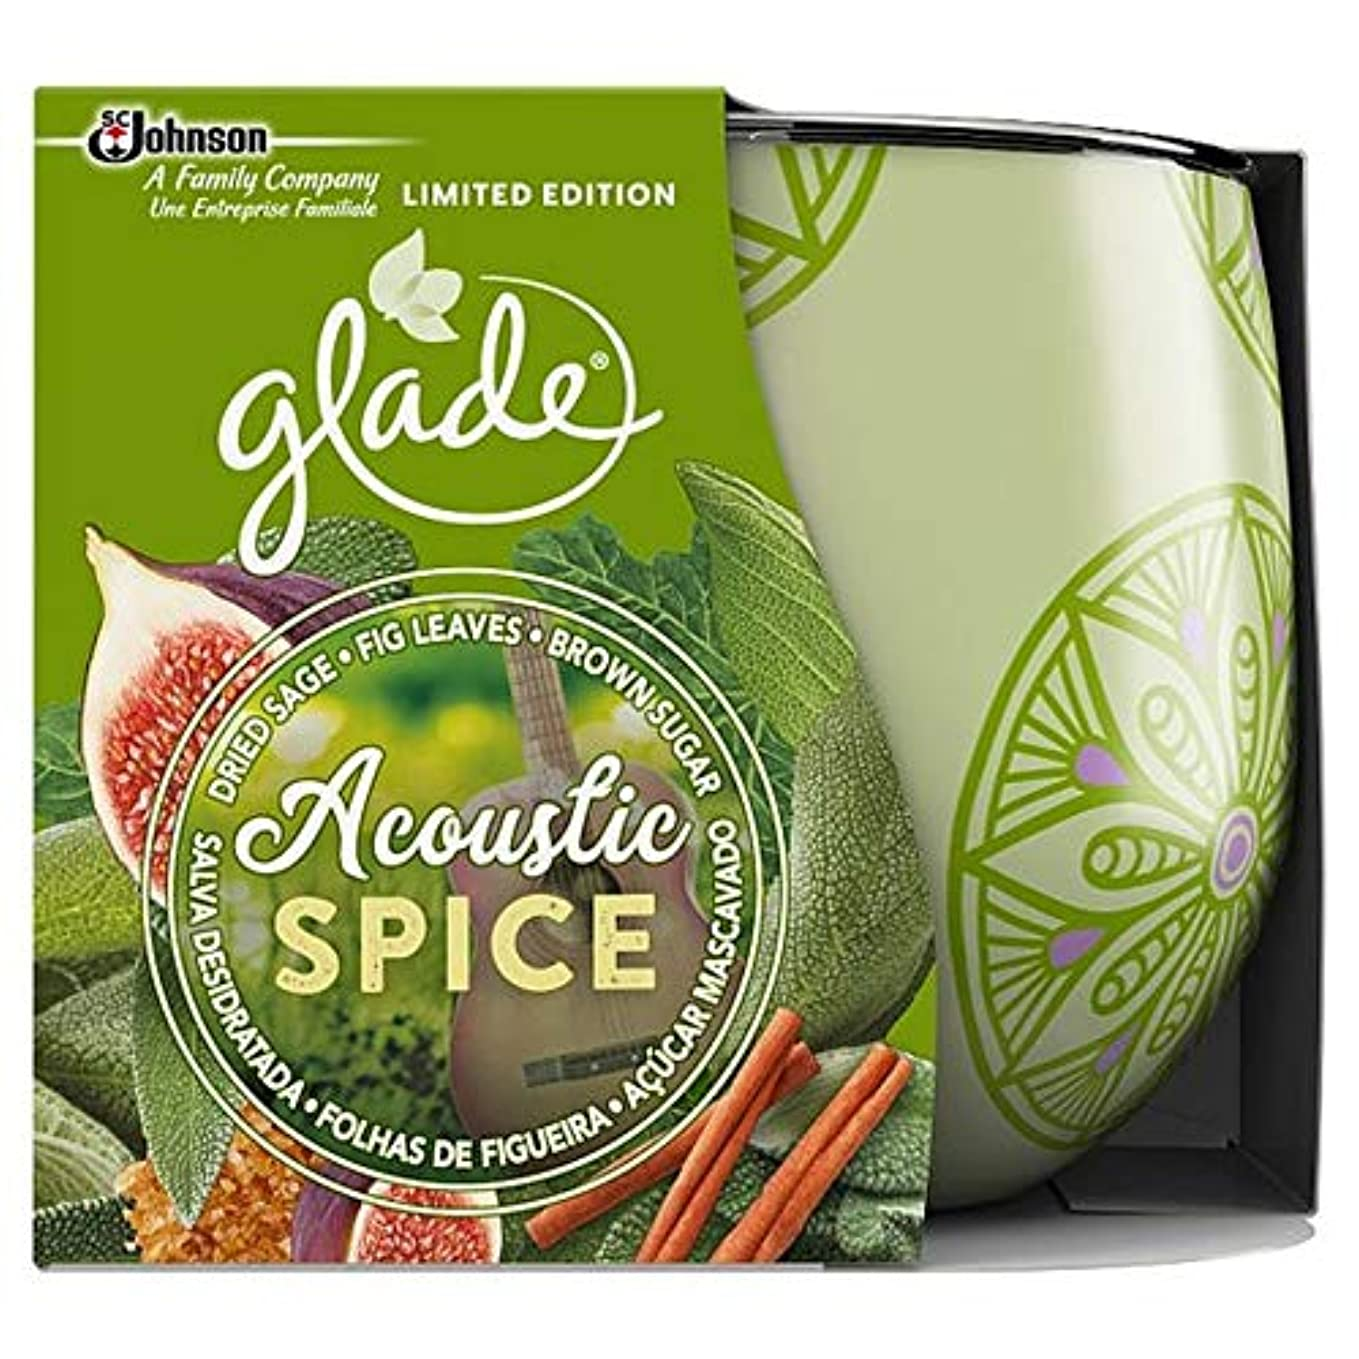 [Glade ] 音響スパイスキャンドル120グラムを空き地 - Glade Acoustic Spice Candle 120G [並行輸入品]